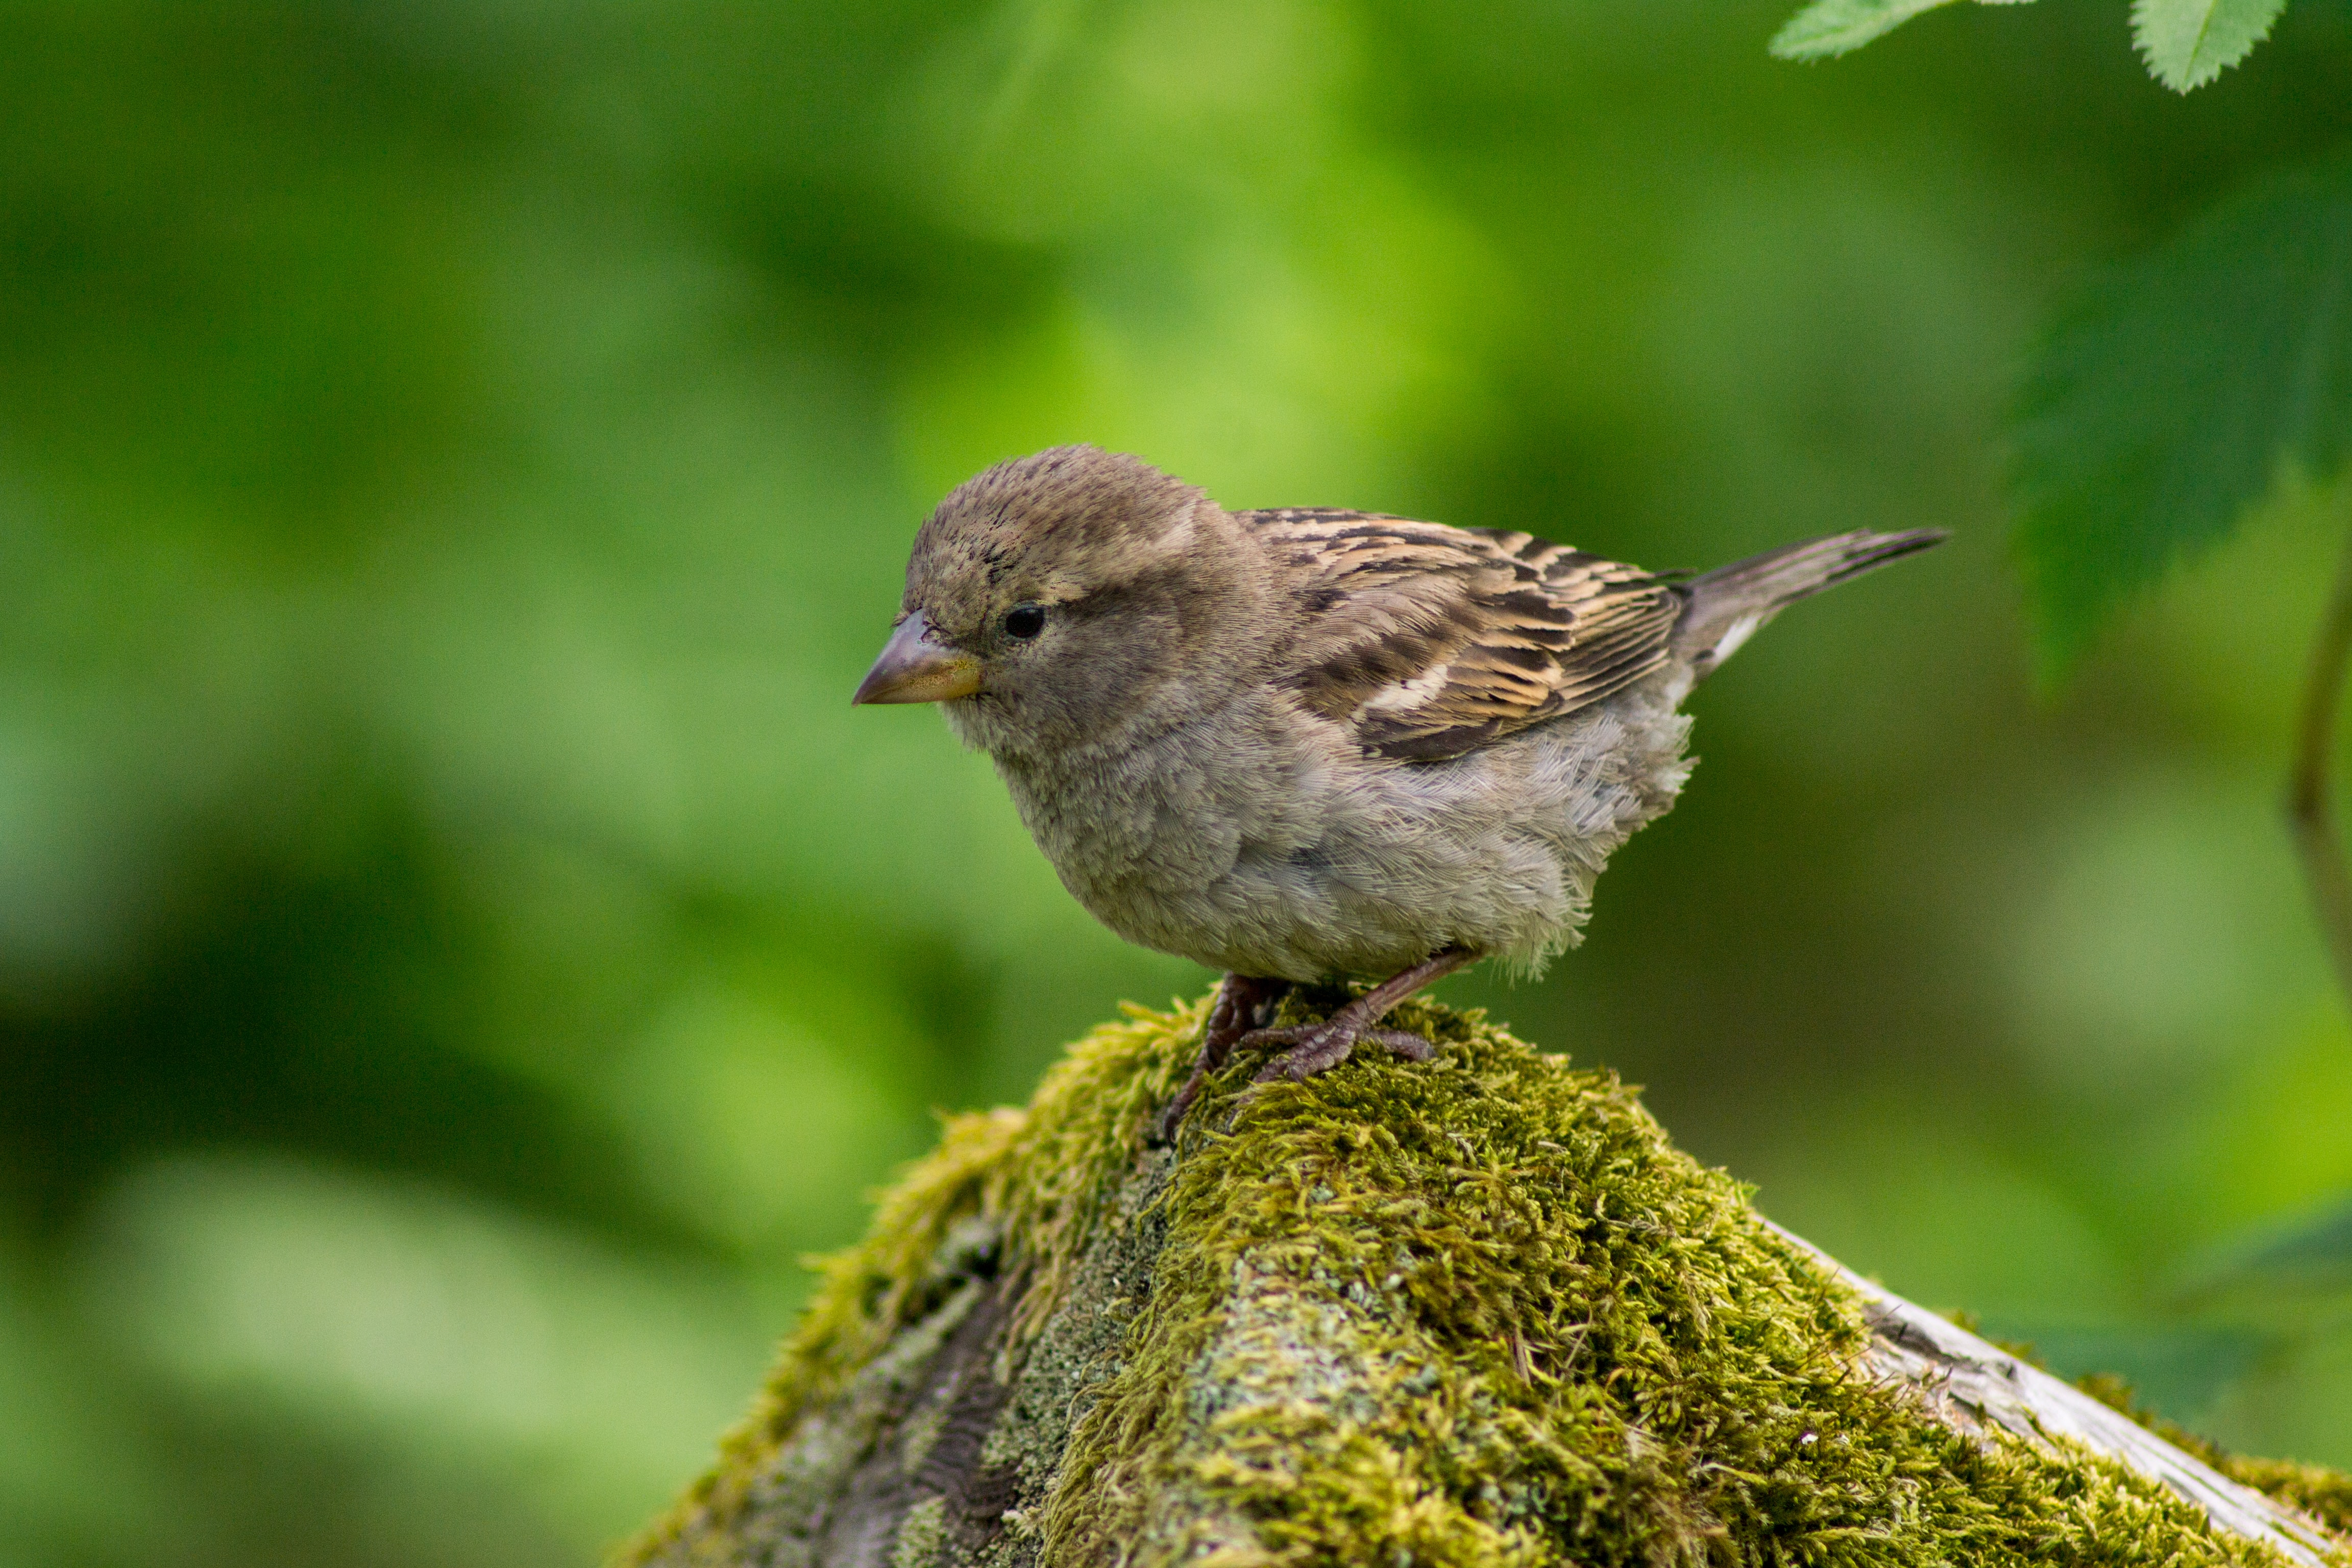 Portrait of a small brown baby bird perched on a mossy branch in the wild